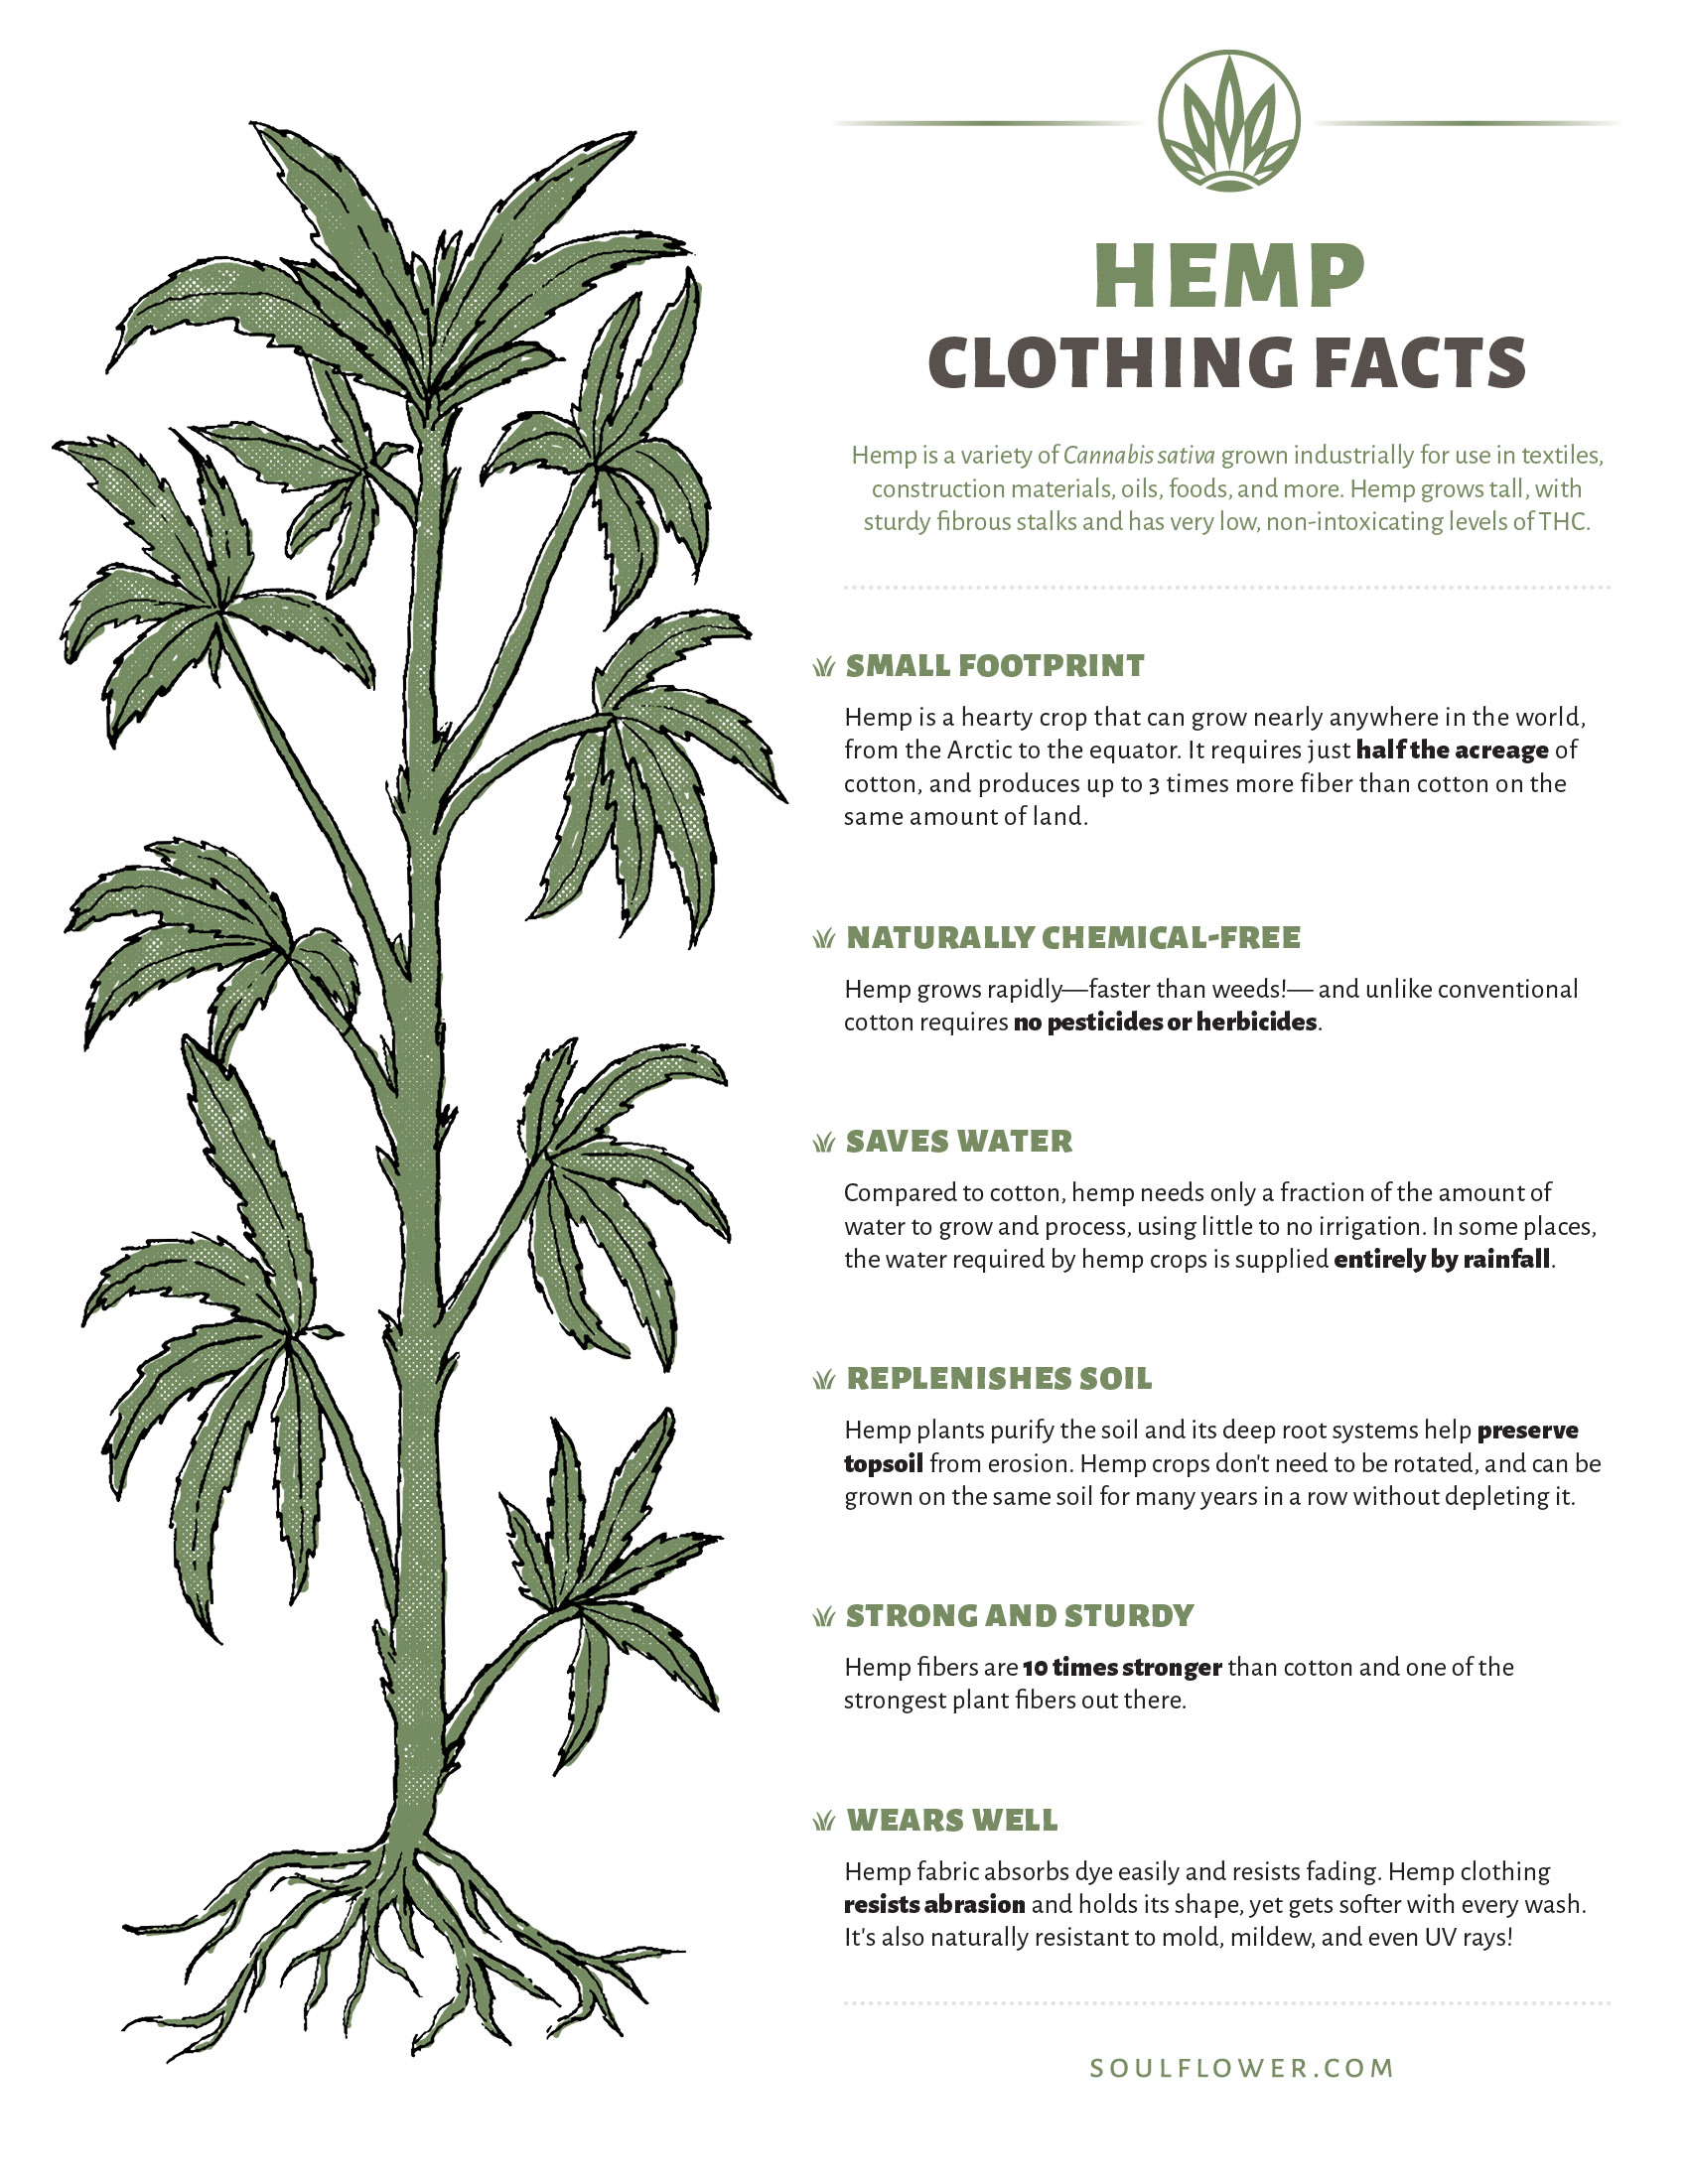 Benefits of Hemp Clothing: Just the Facts!